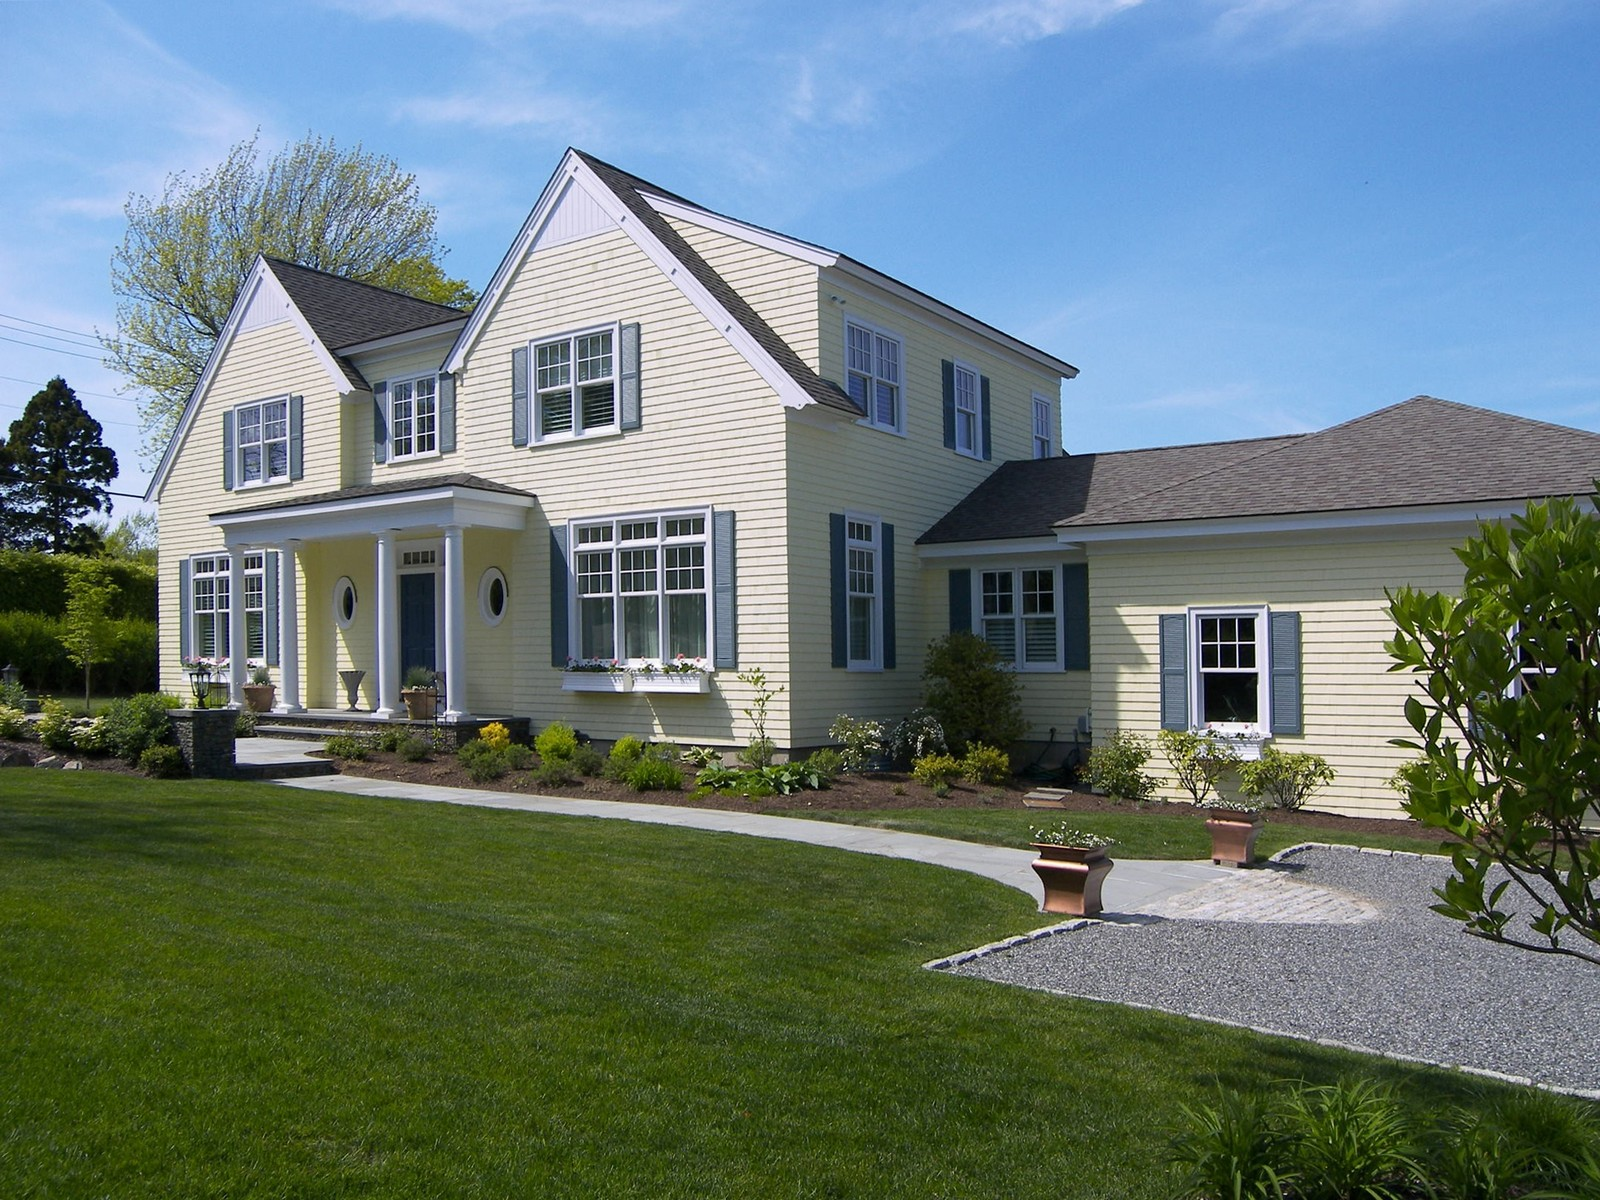 Single Family Home for Sale at Ocean Drive Area 17 Beacon Hill Road Newport, Rhode Island 02840 United States